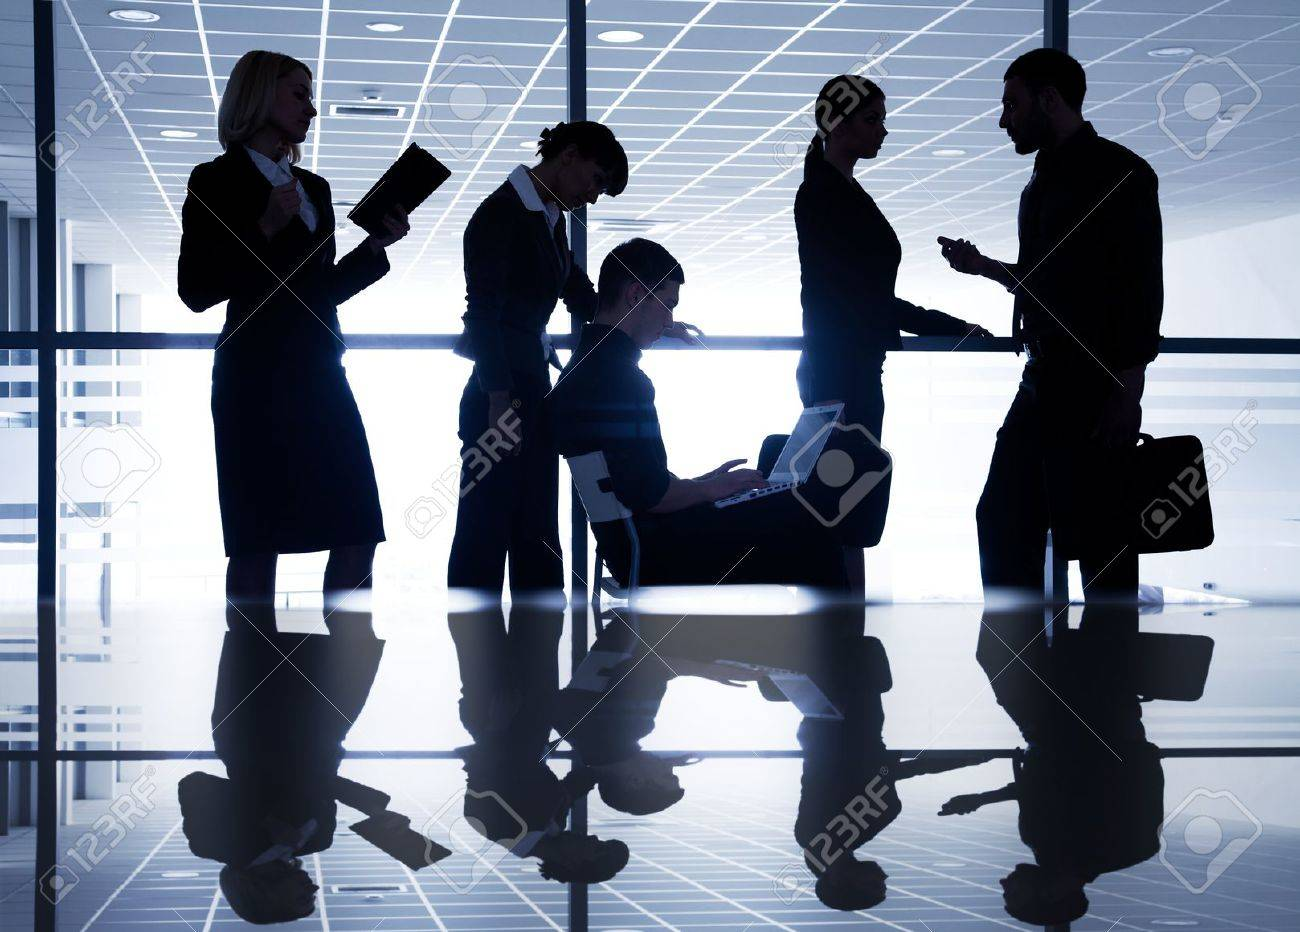 Several silhouettes of businesspeople interacting  background business centre Stock Photo - 27439092